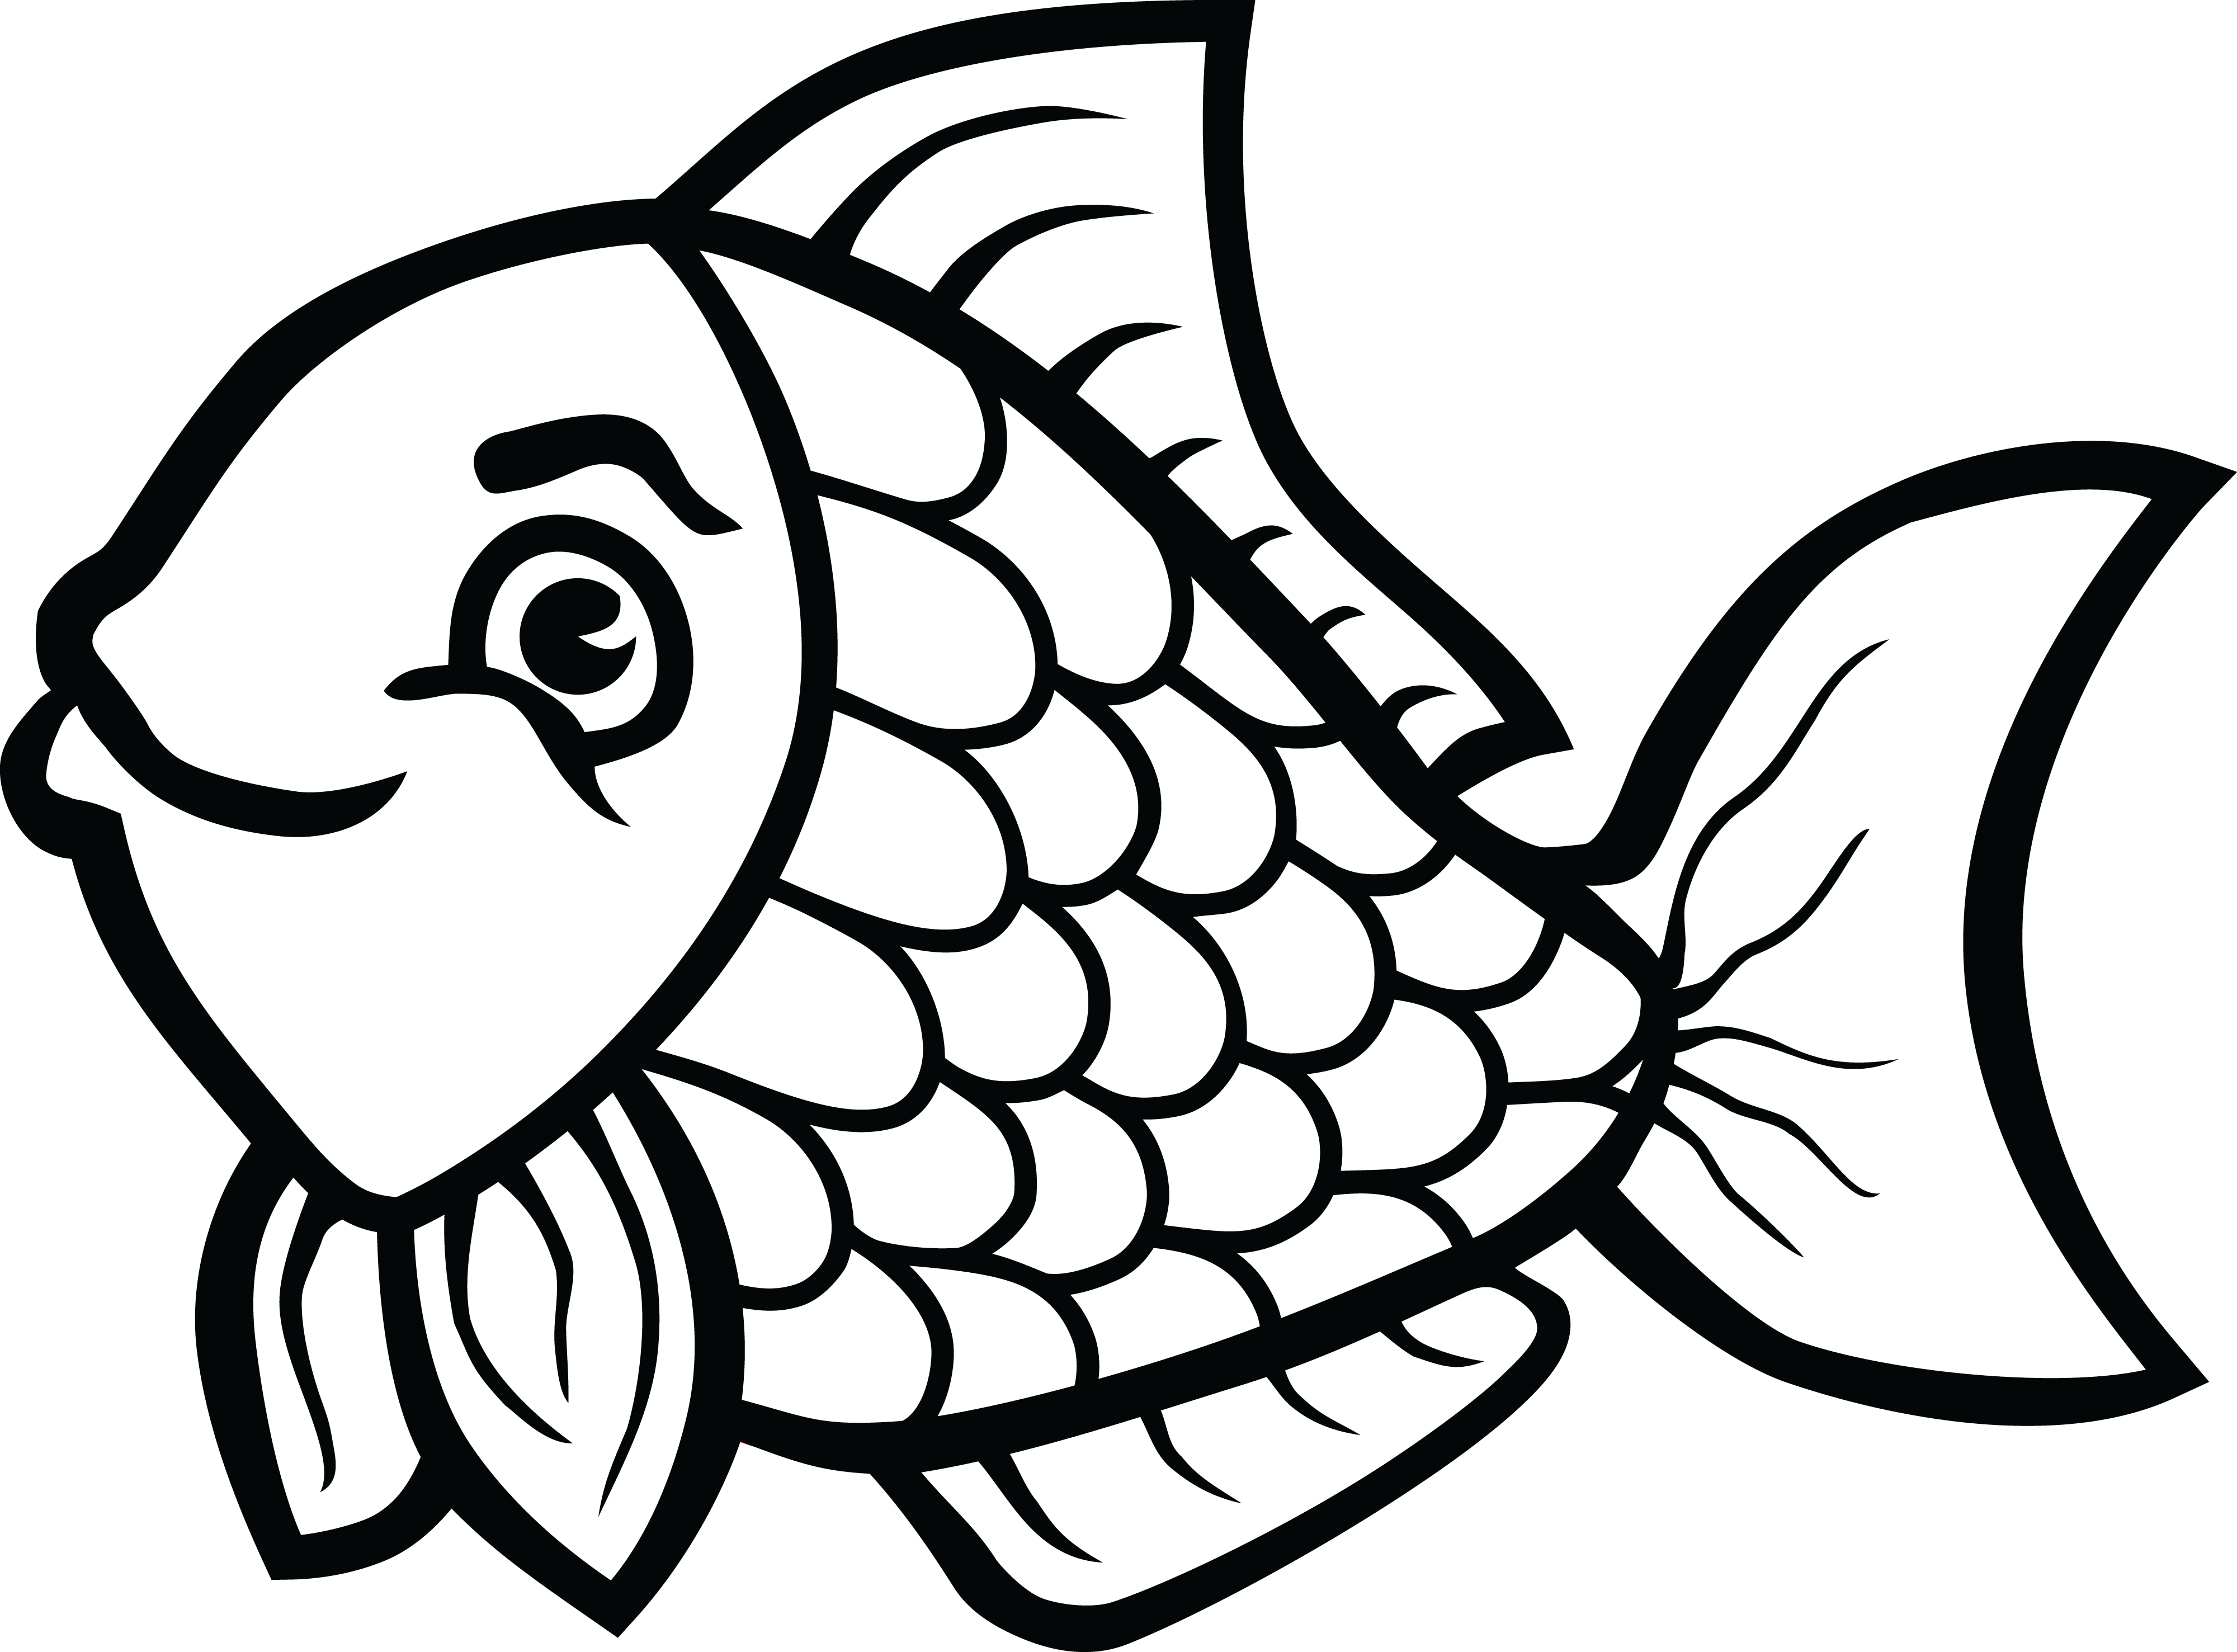 Clip art transparent download of fish in black and white rr png